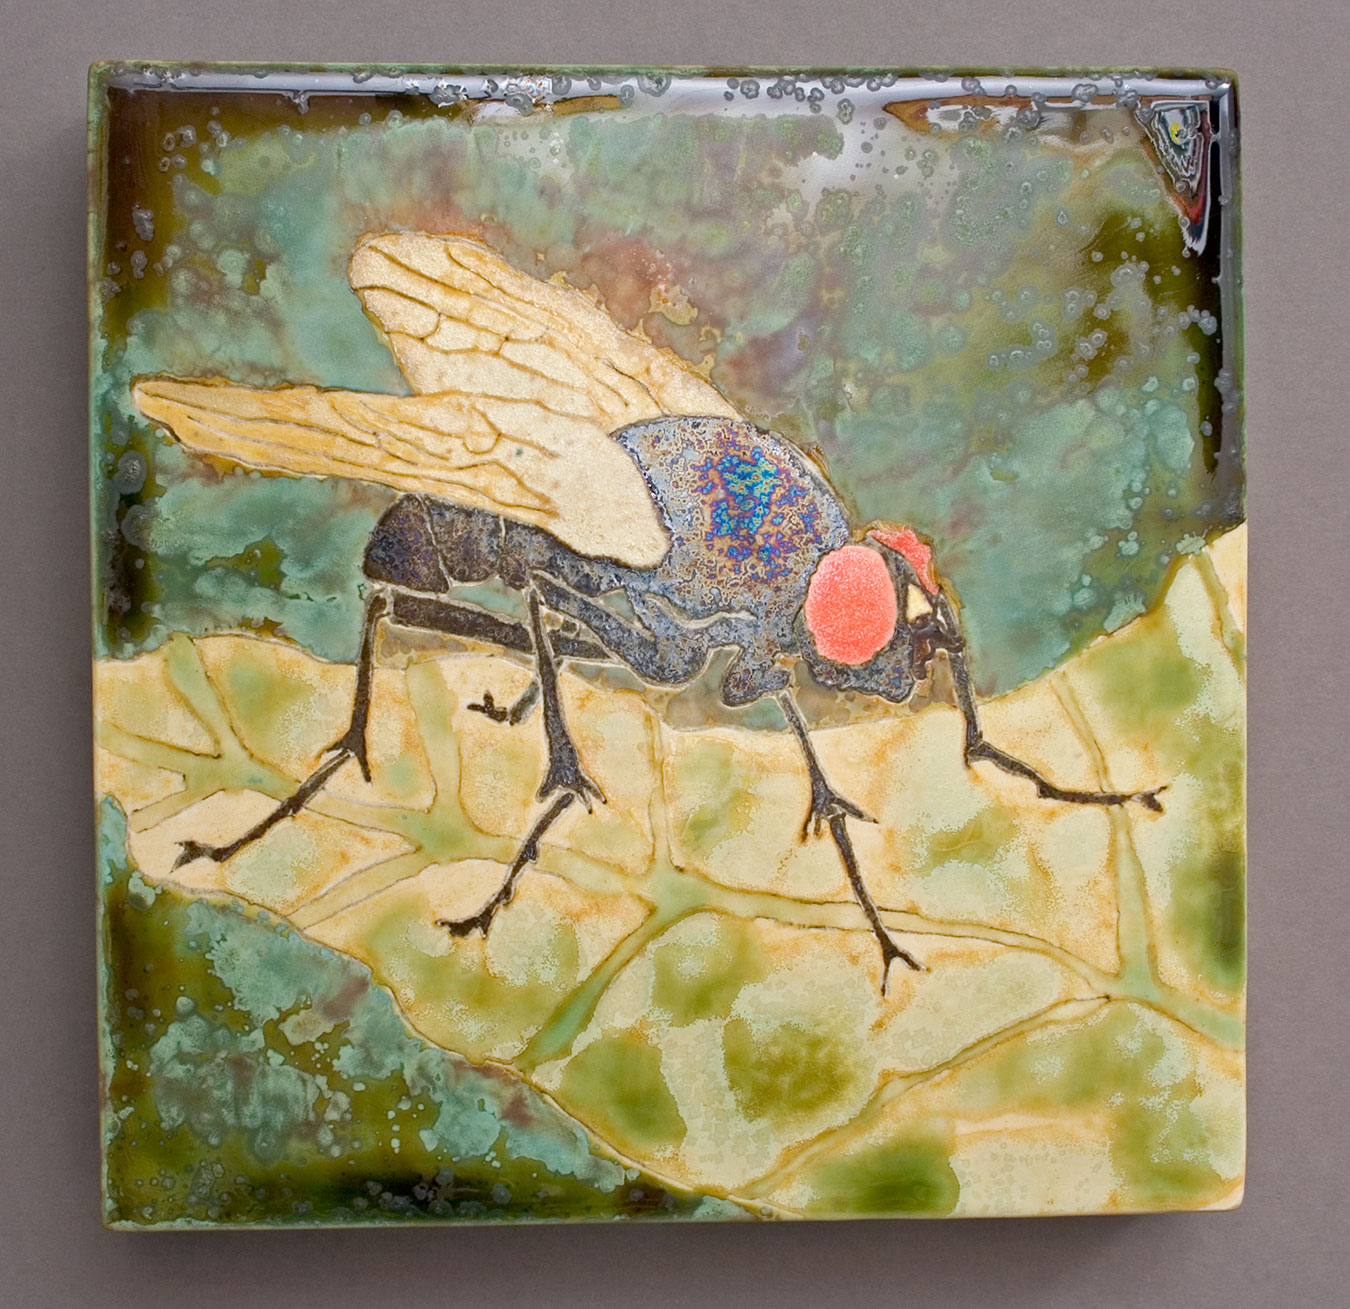 Red-Eye-Fly-ceramic-art-painting-Samantha-Henneke.jpg